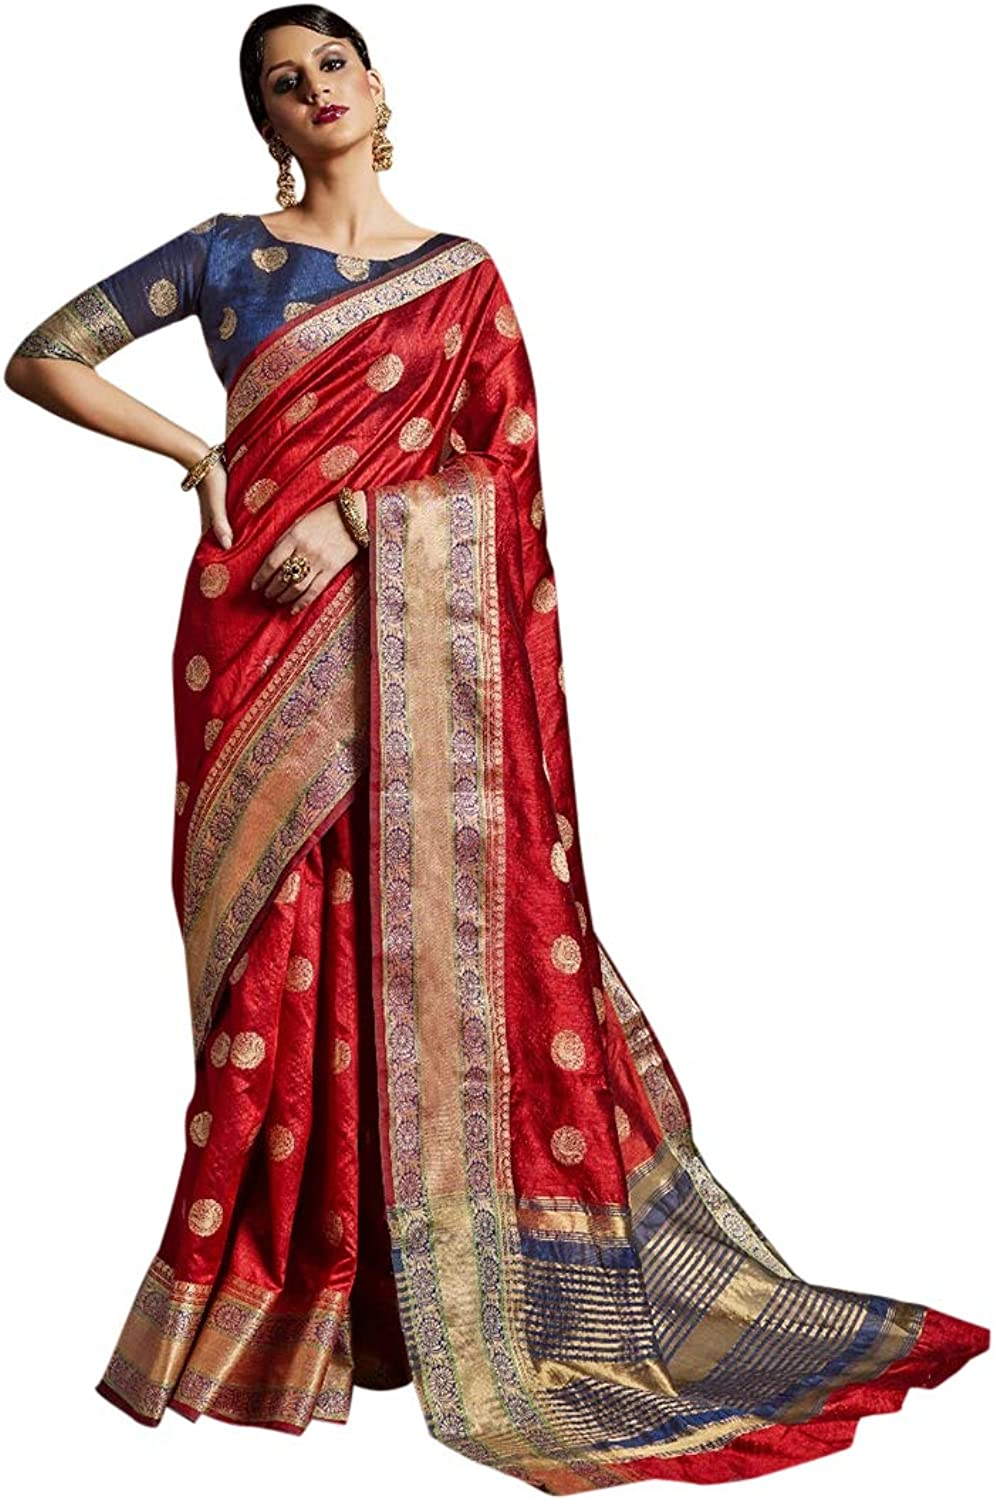 Indian Ethnic Red Border with Booty Royal Silk Saree With Blouse Rich Pure Party Wear 7345